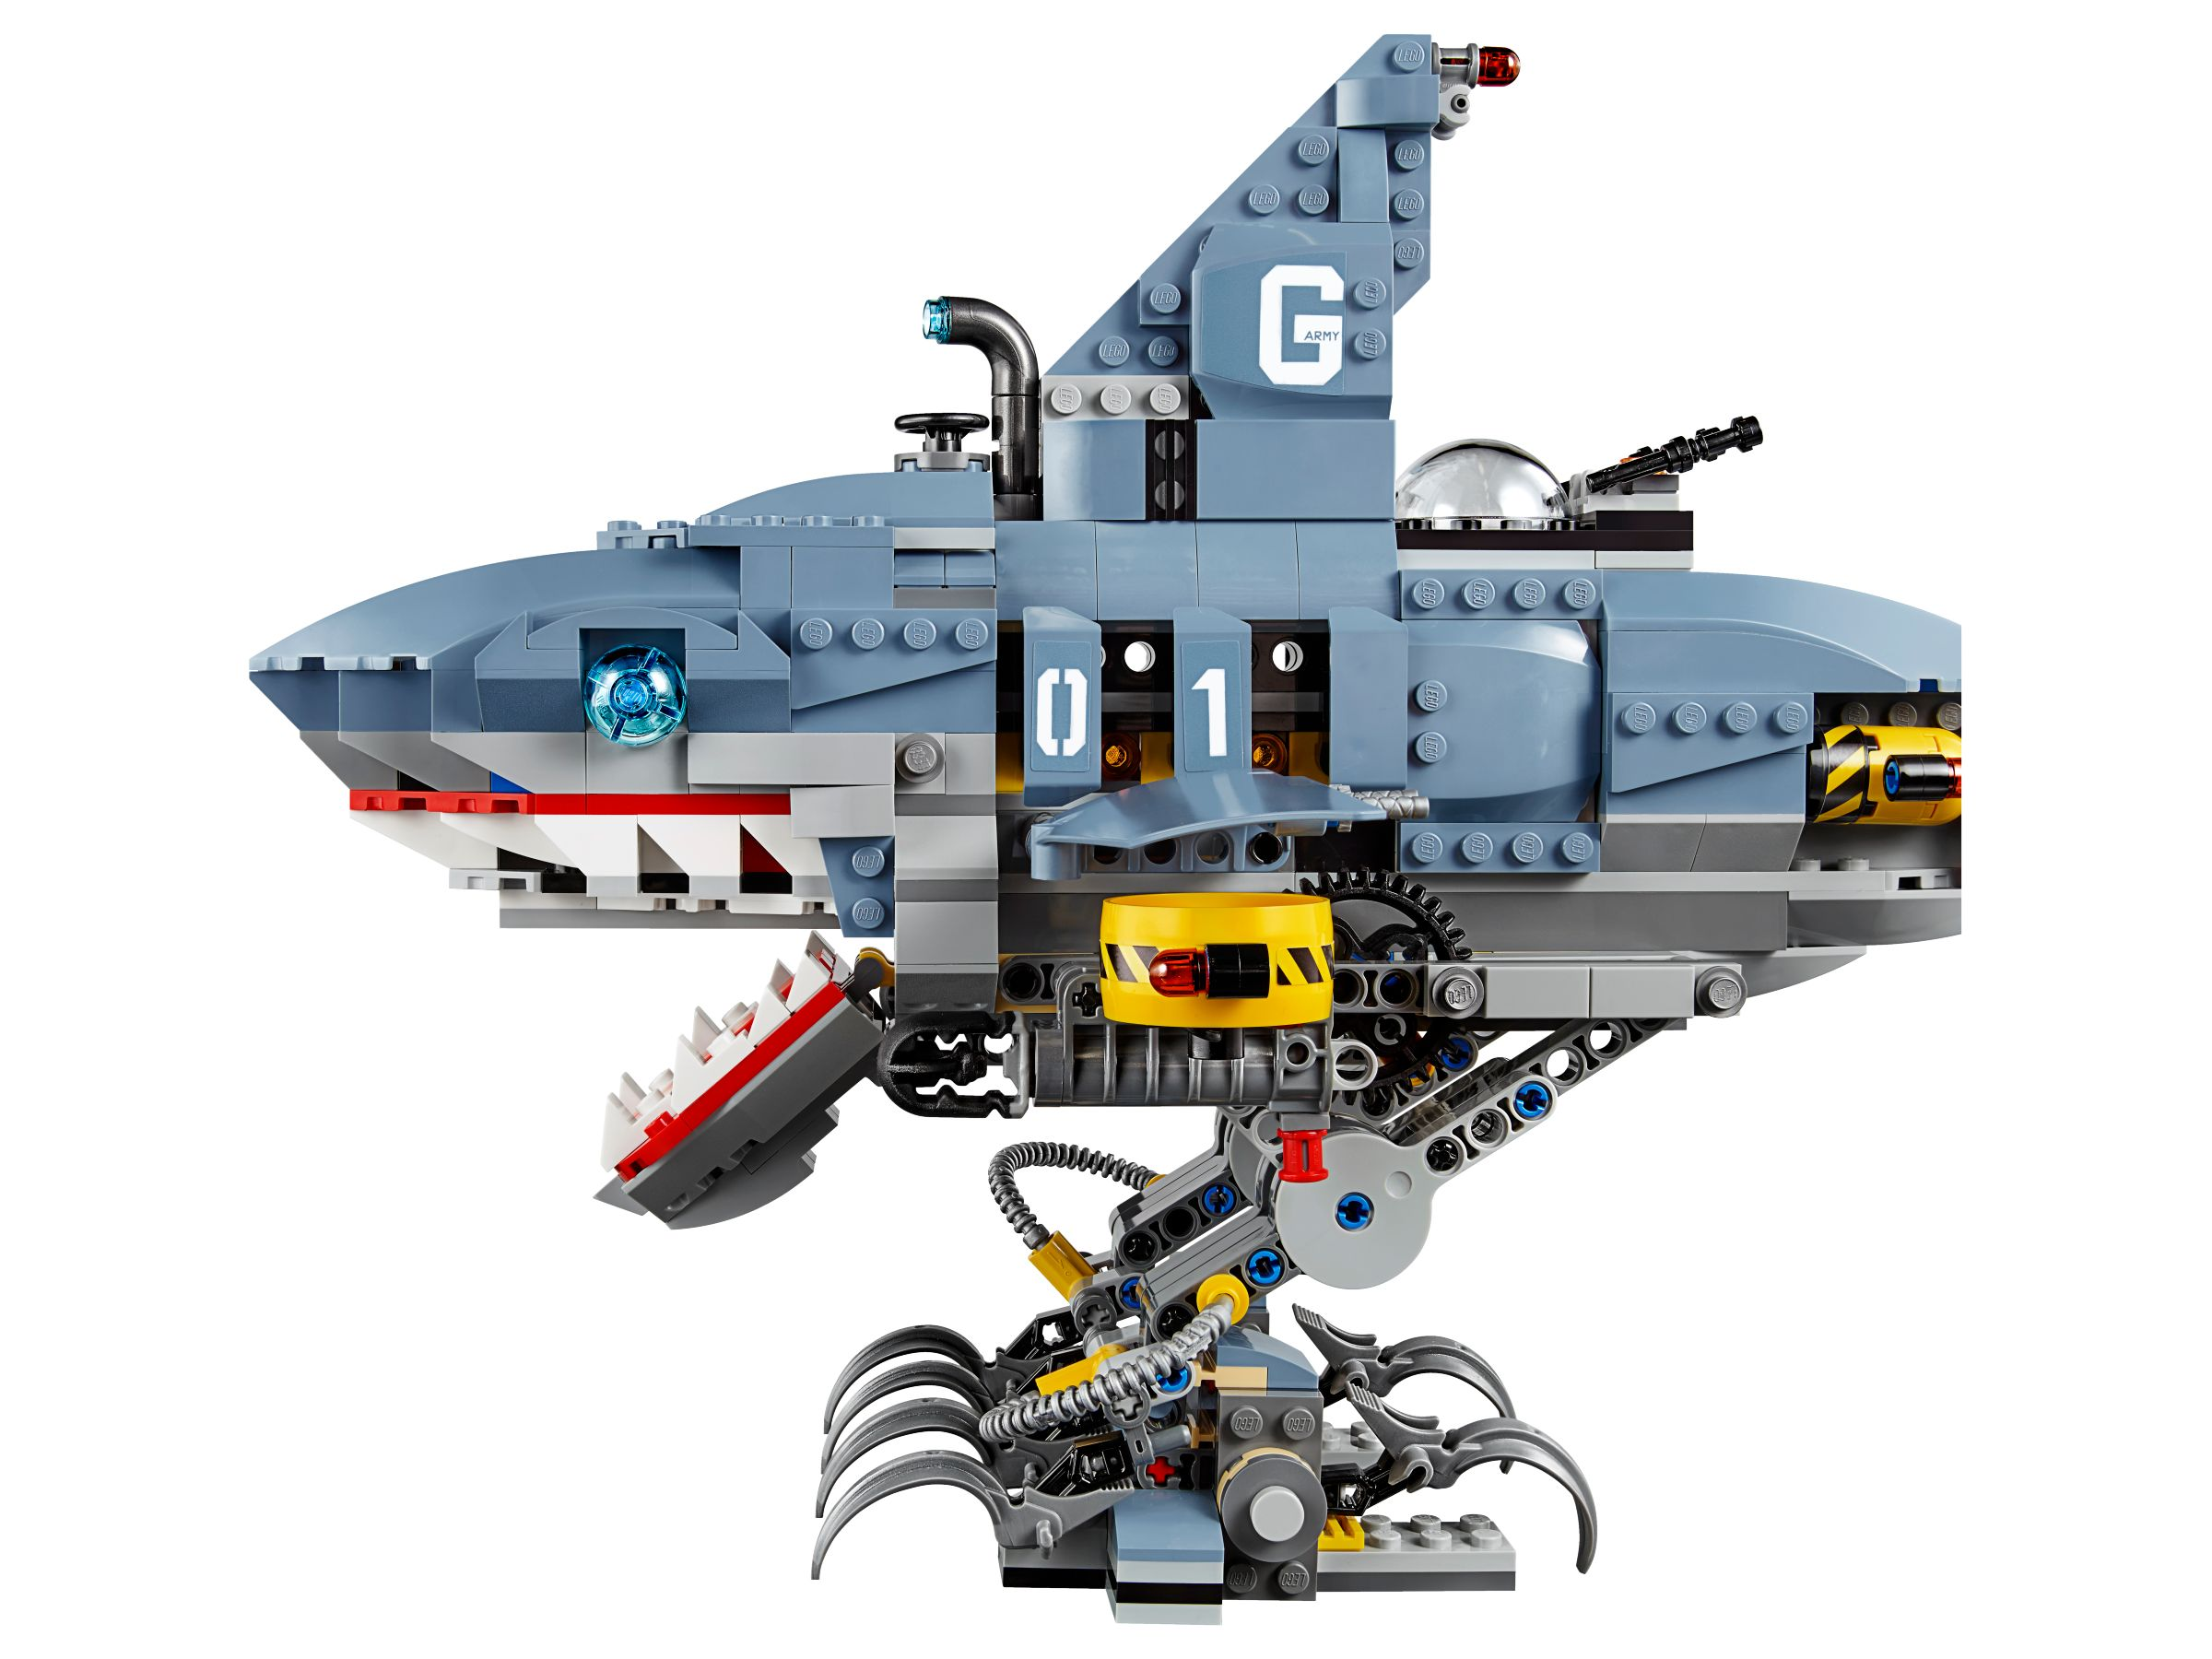 LEGO The LEGO Ninjago Movie 70656 Garmadon, Garmadon, GARMADON! LEGO_70656_alt4.jpg